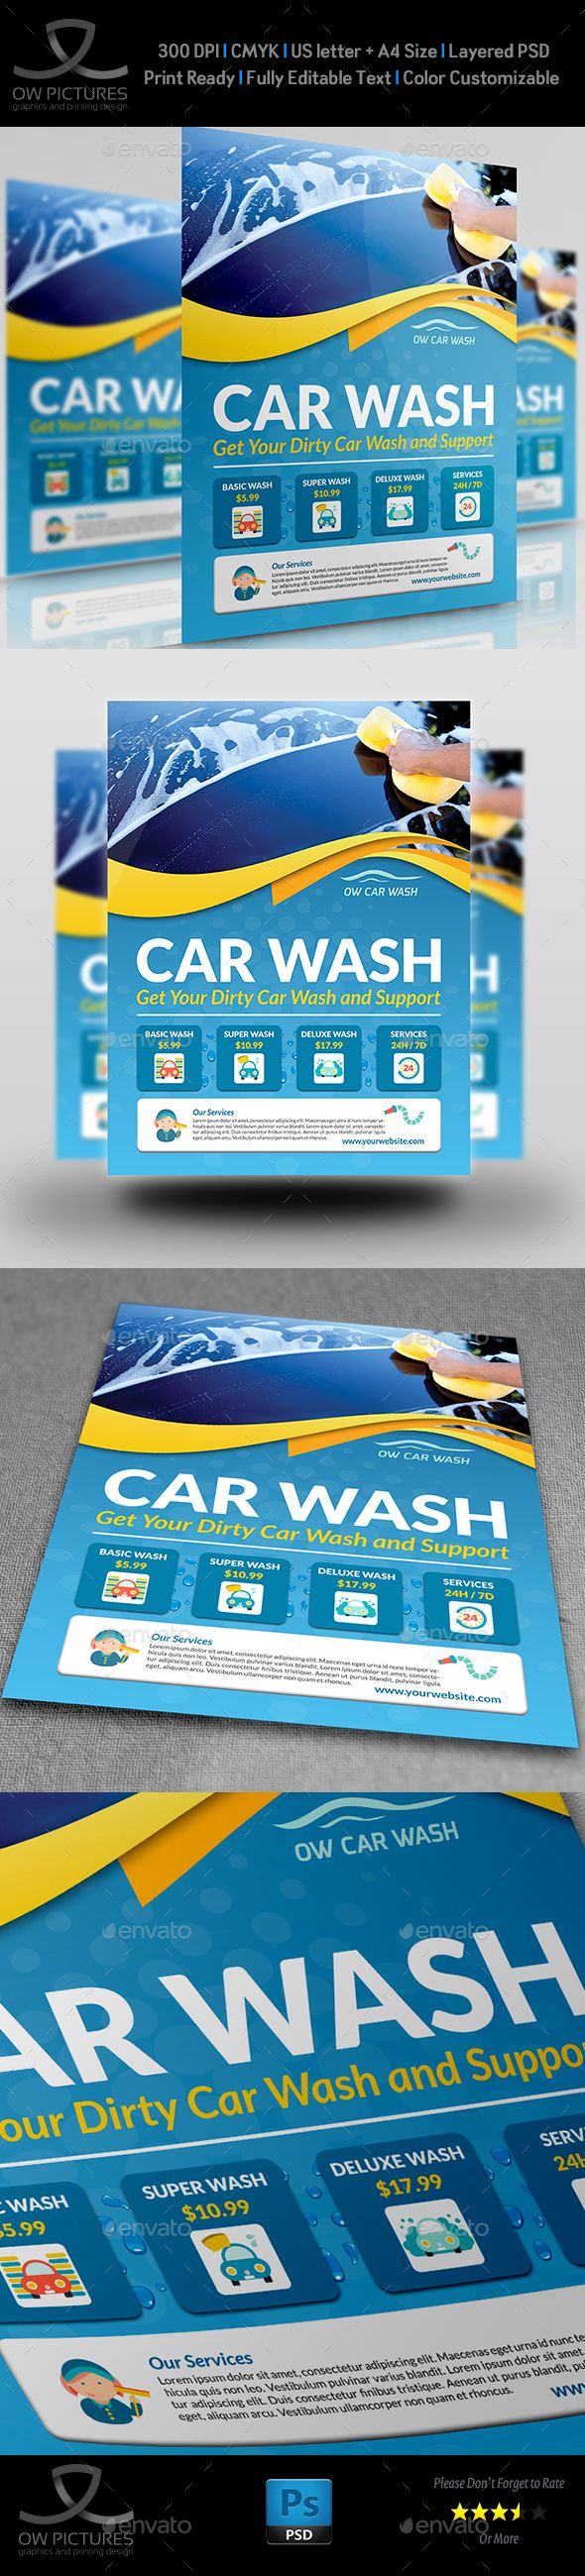 8 95 full service car wash save 4 on the regular full service car wash price of 12 95 hurry and get this coupon now pinterest car wash prices